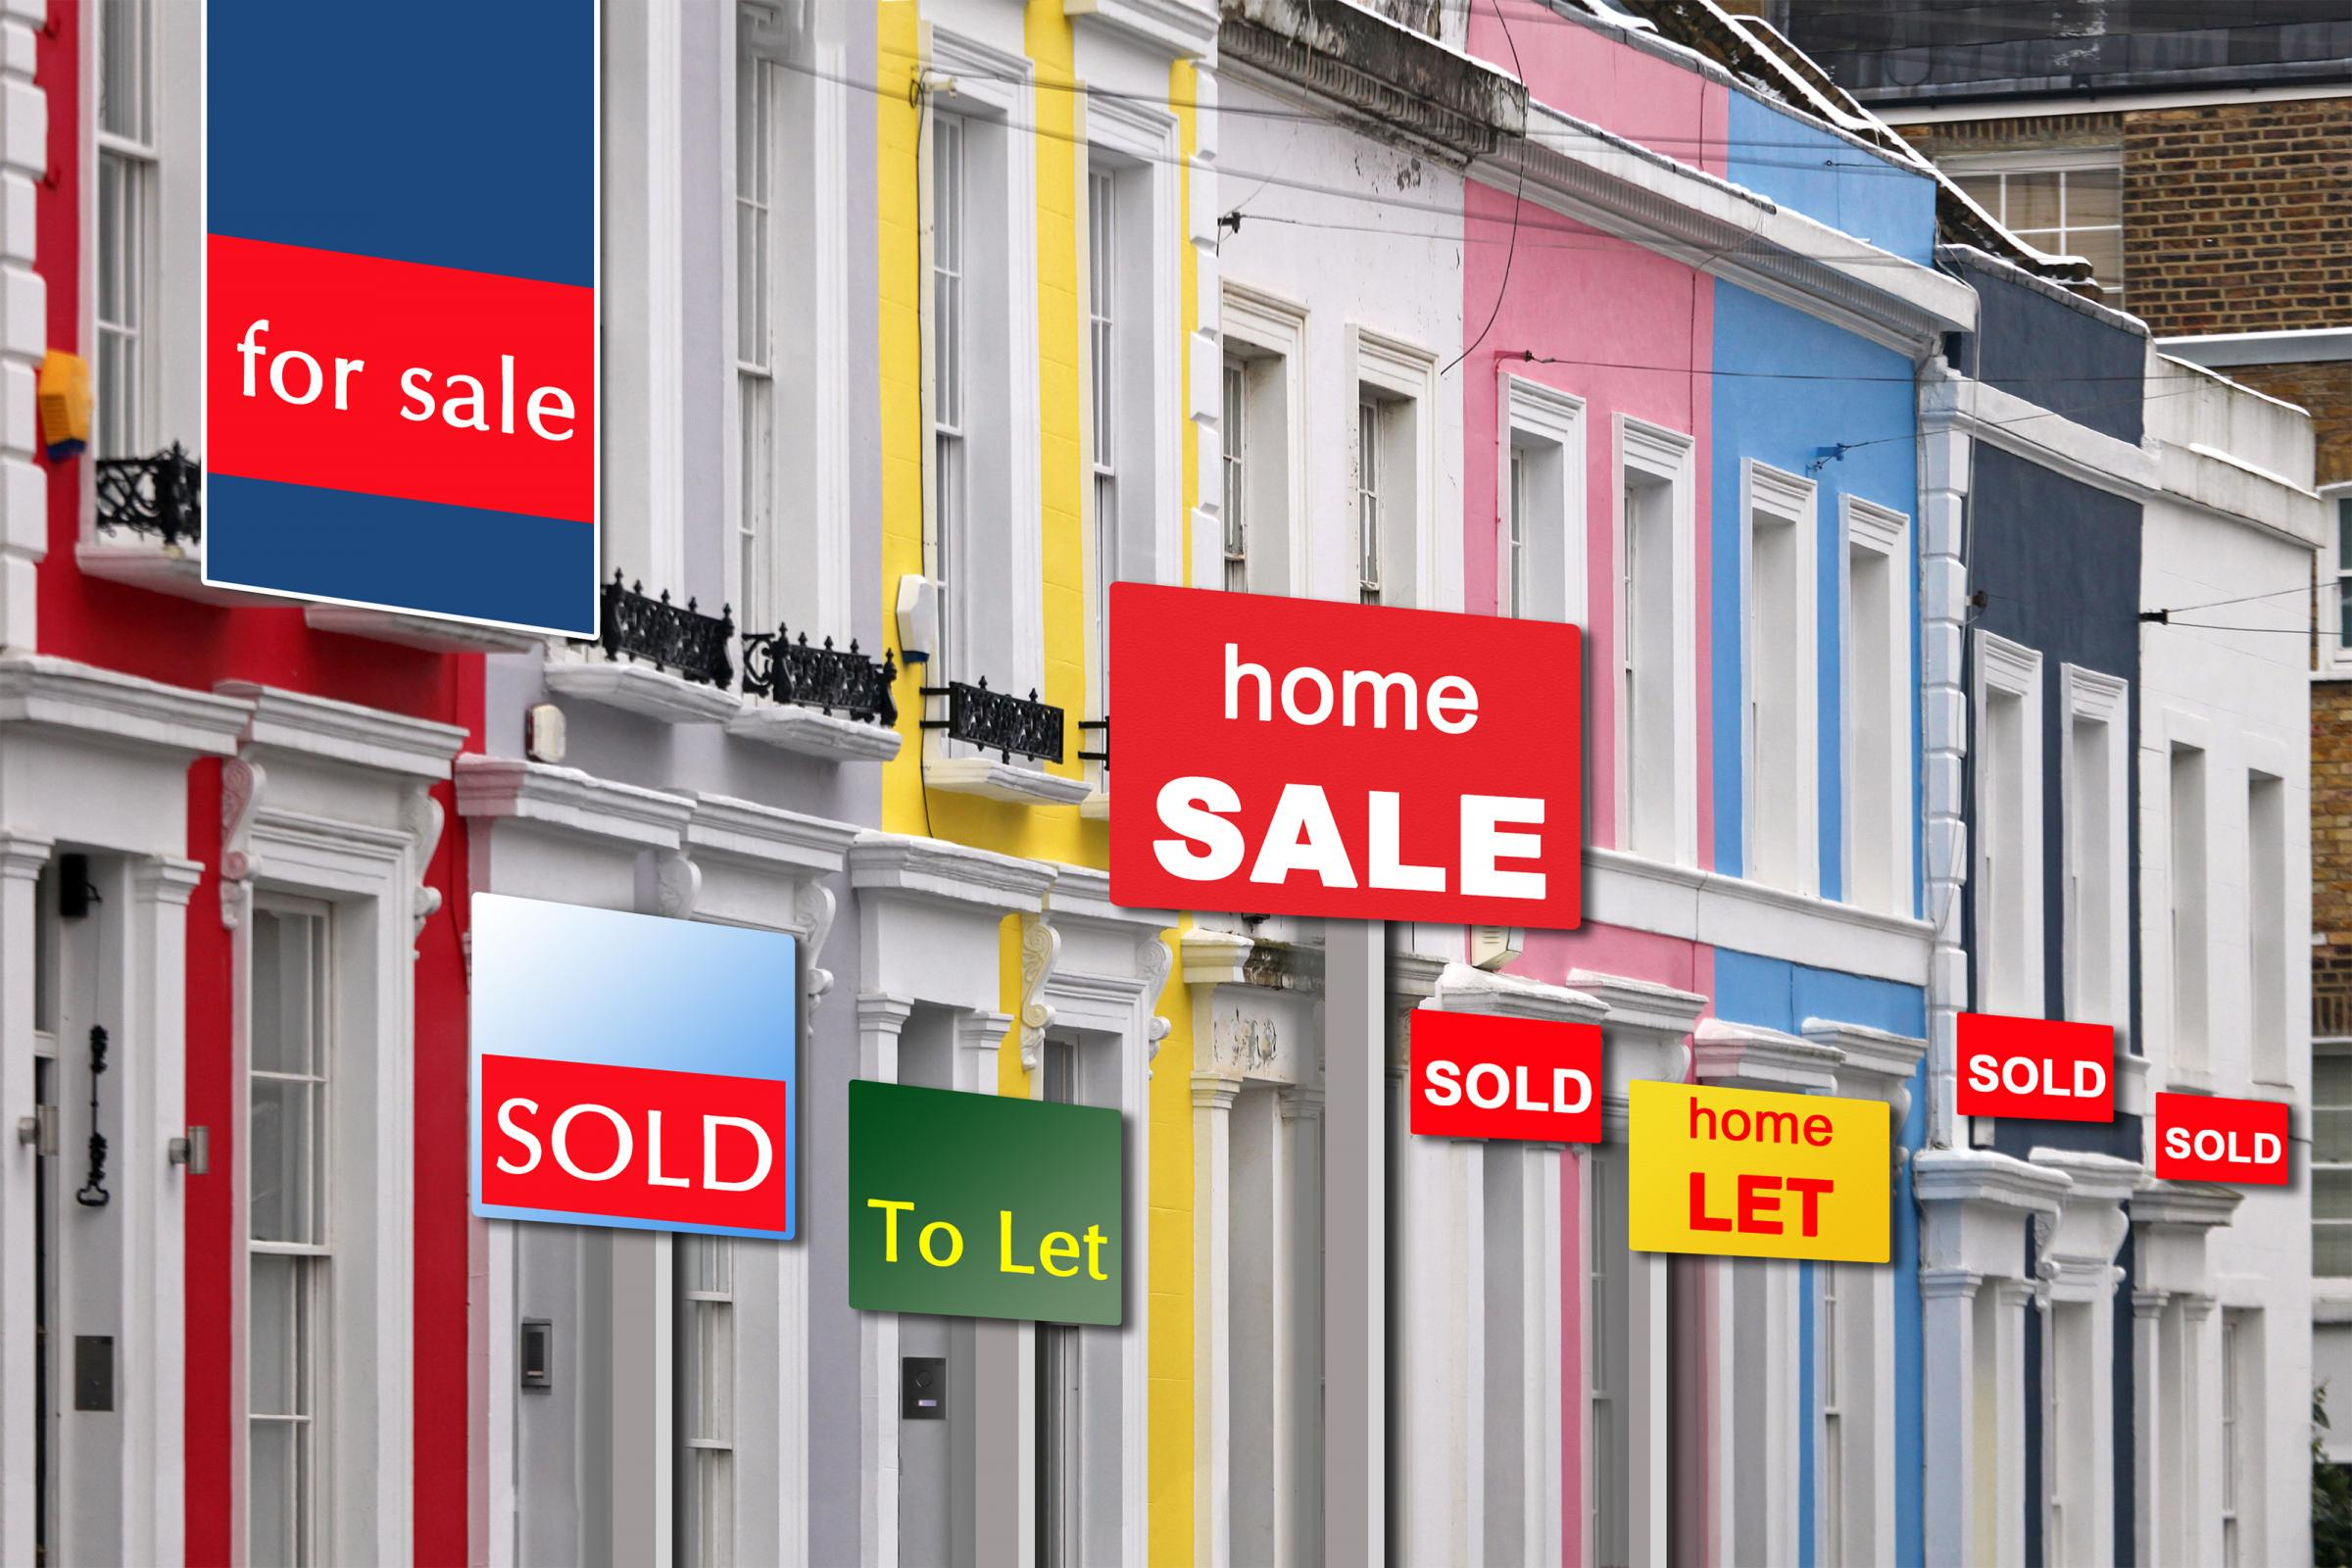 September saw a 20 per cent increase in available property for sale in London. In Kensington & Chelsea available property almost doubled.